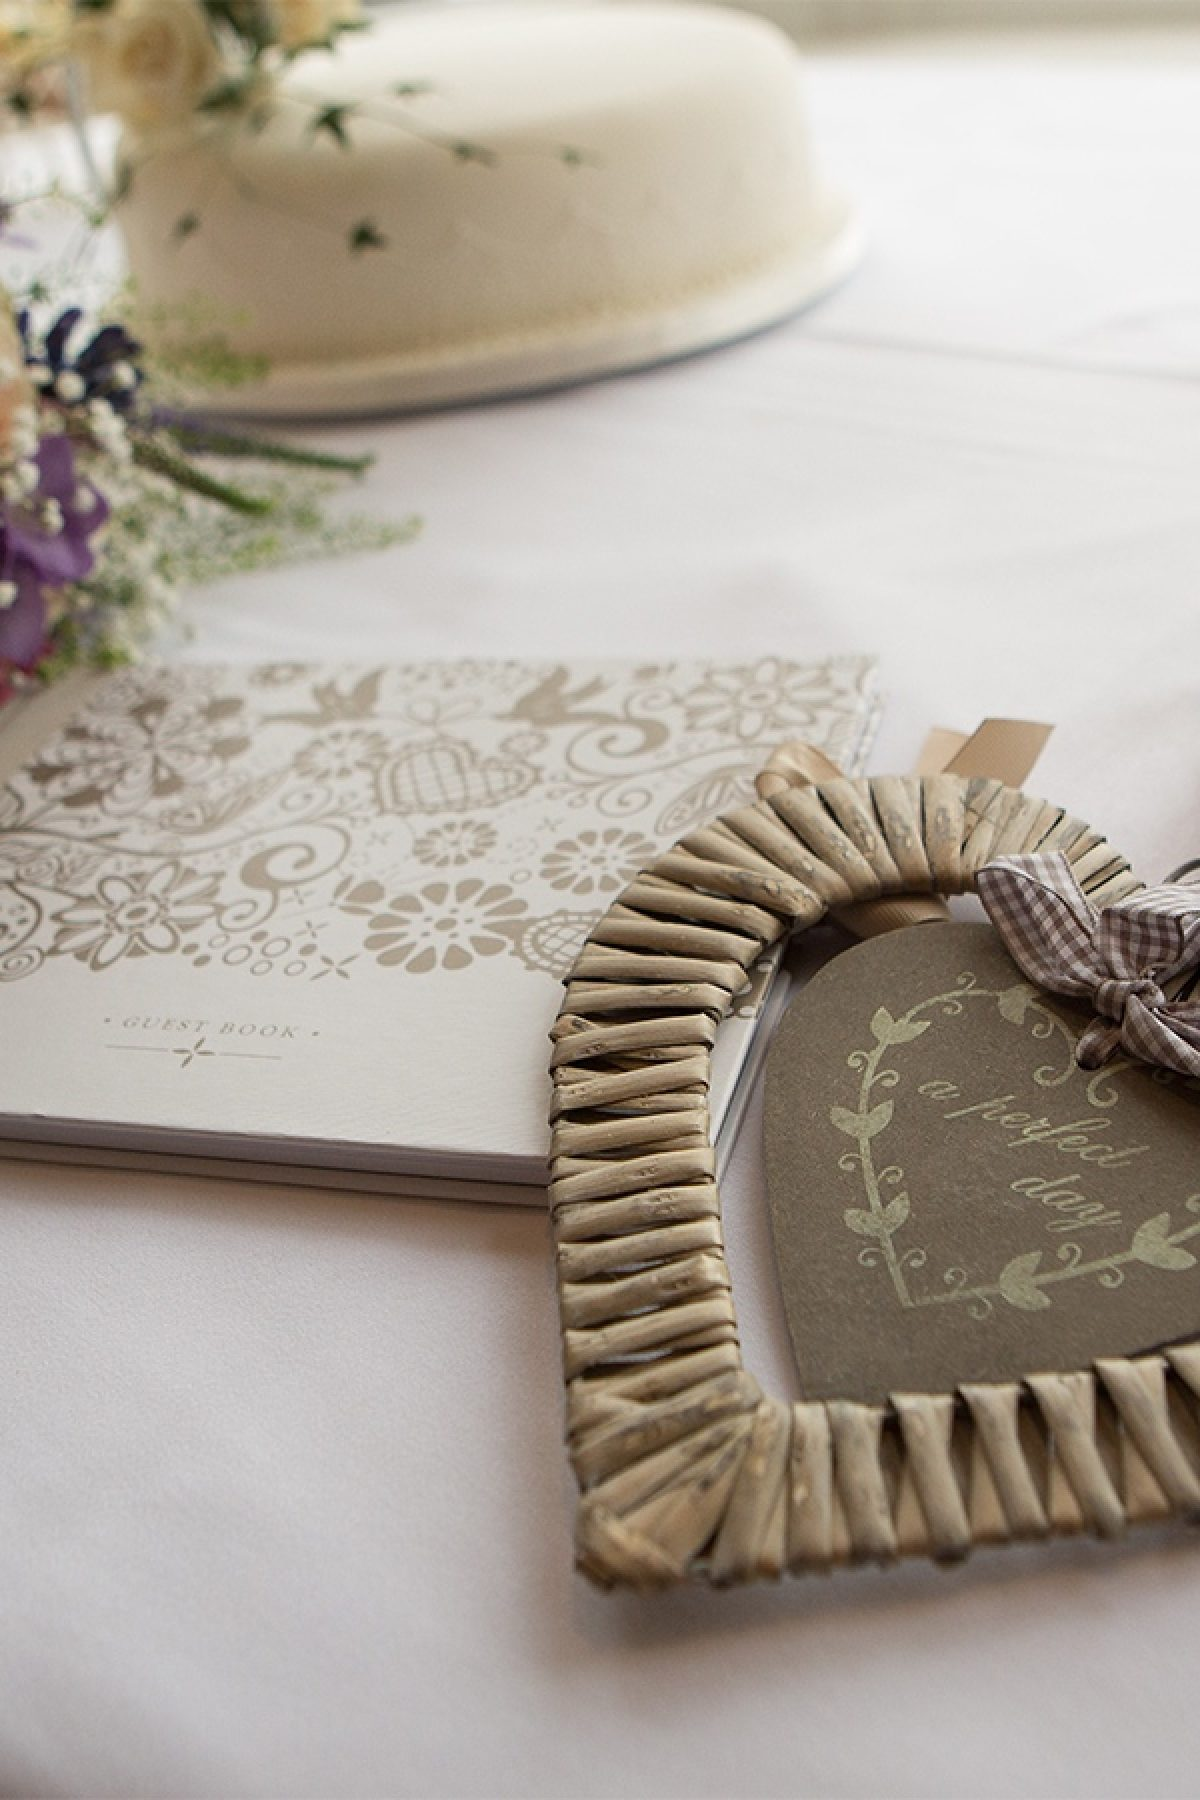 Wooden horse shoe and heart laid on table with white cloth.